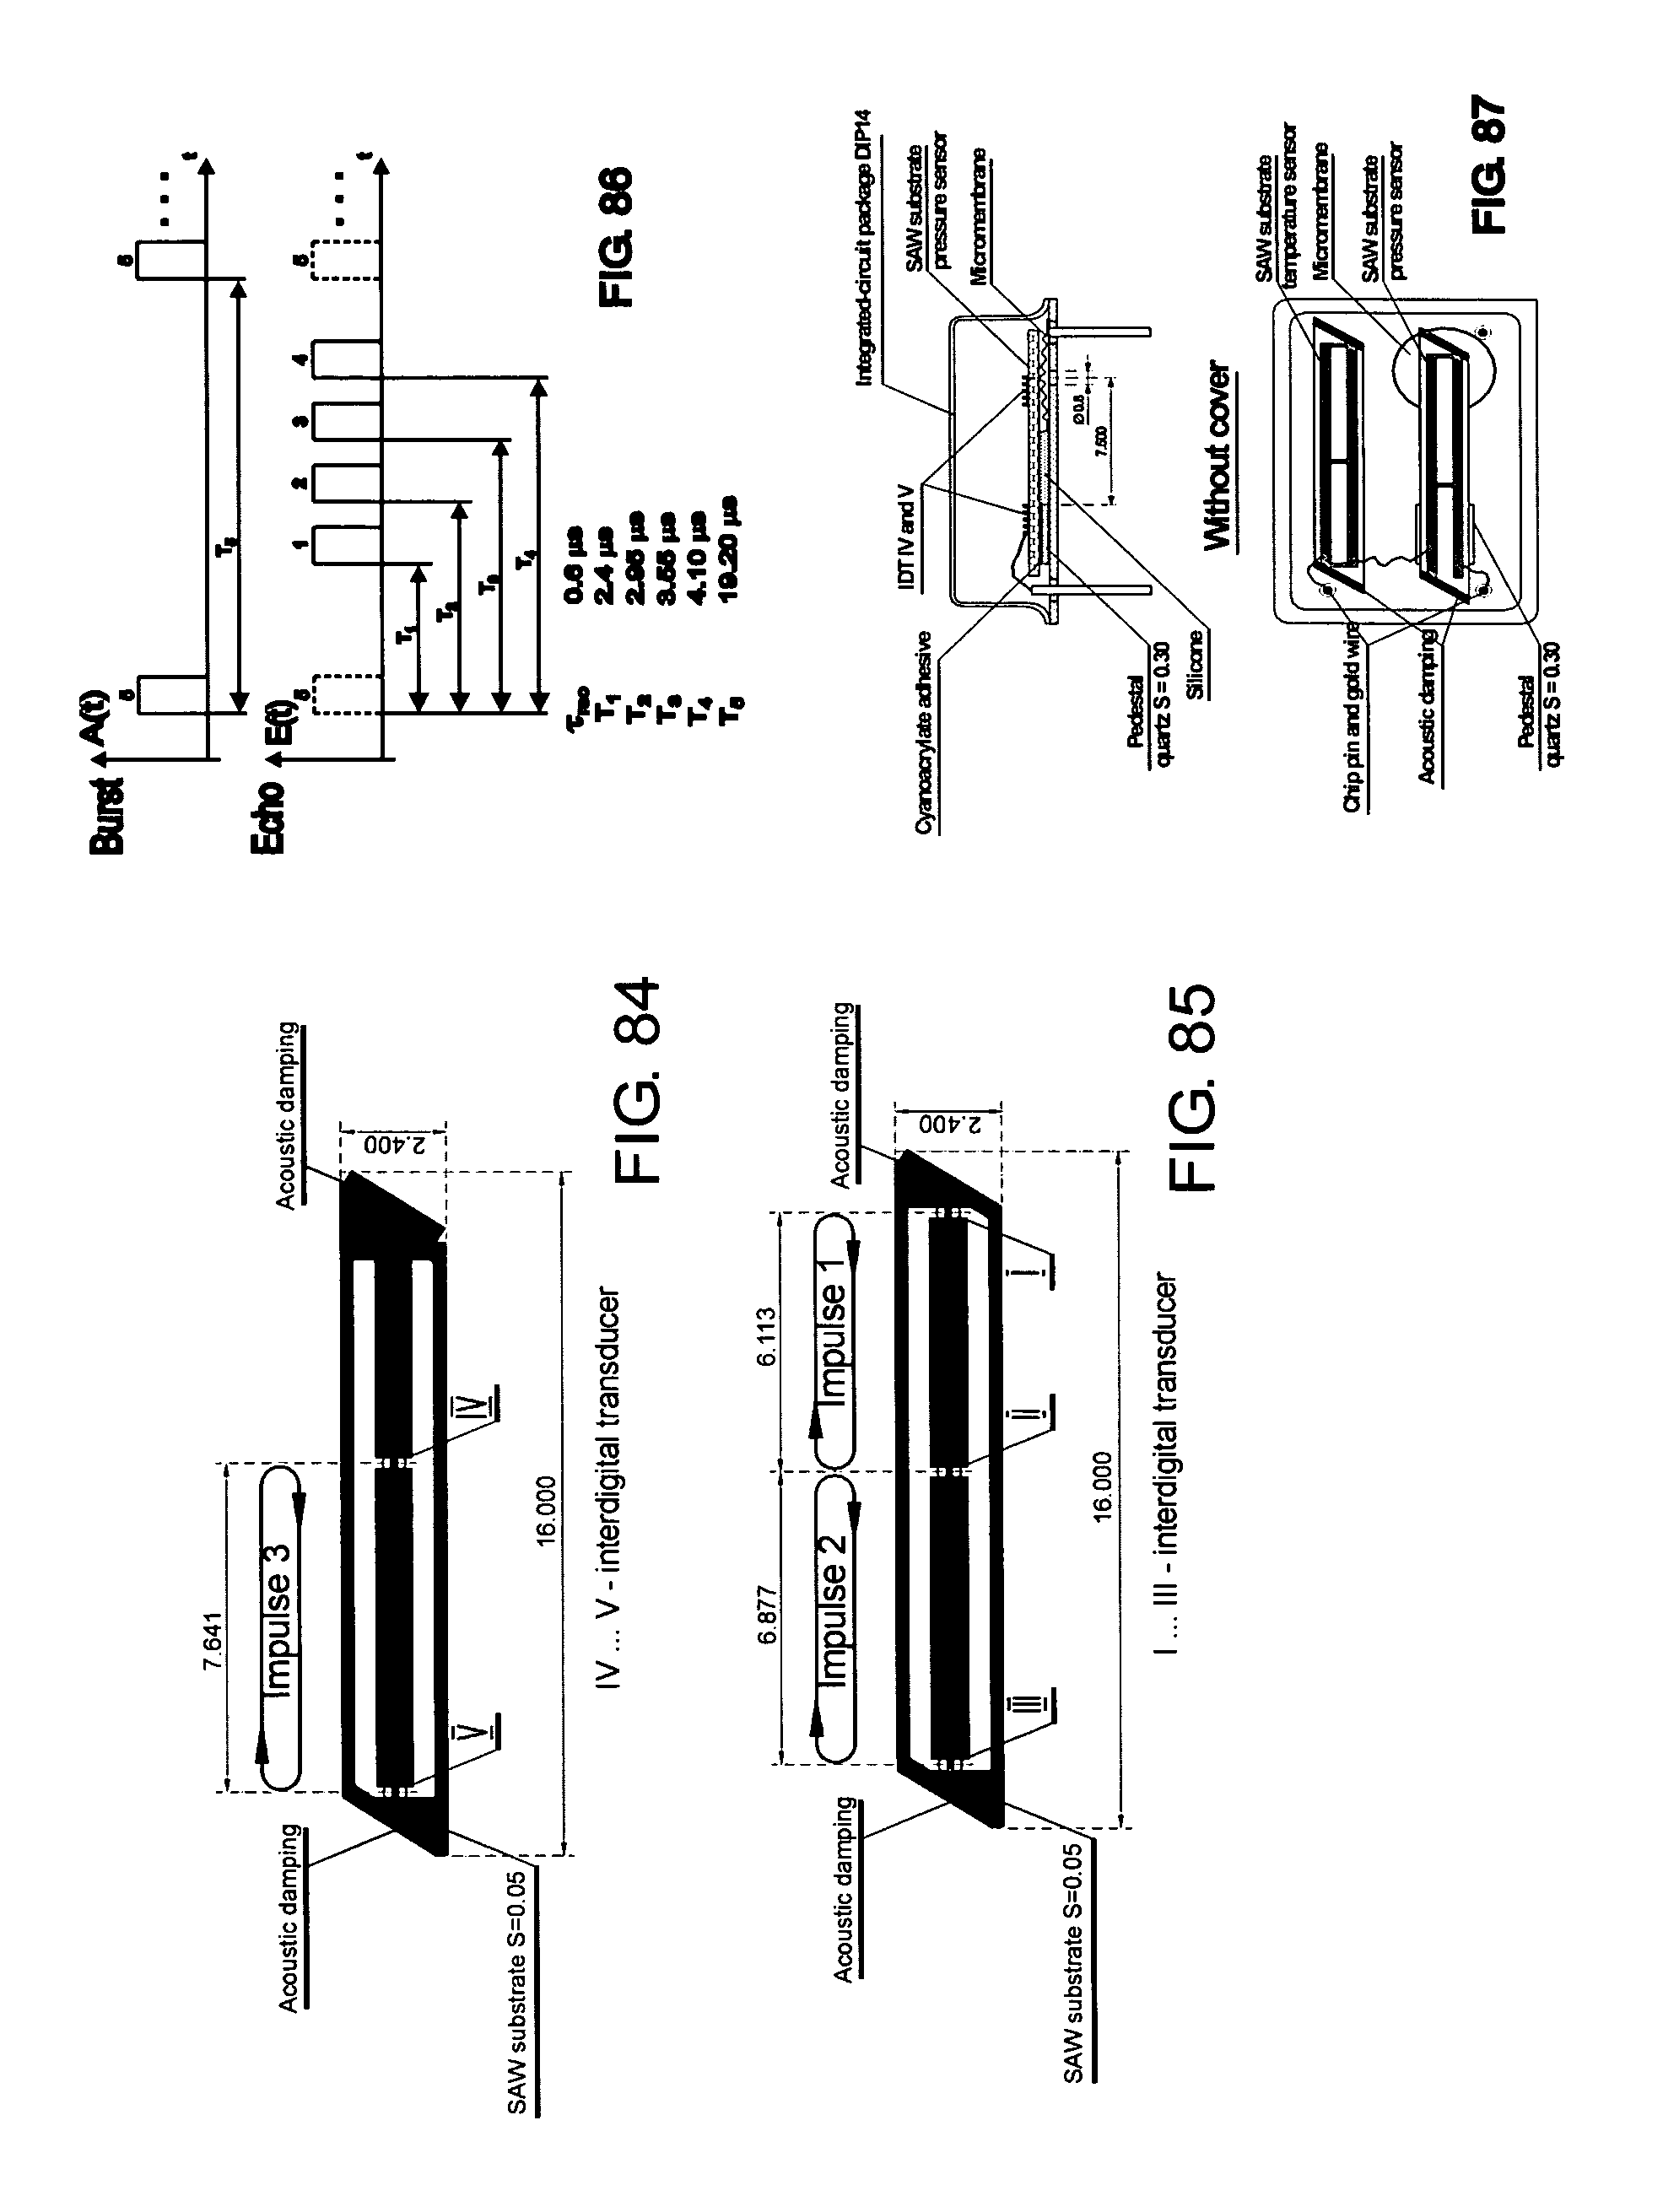 Patent Us 7421321 B2 Led Tv Power Supply Circuit Diagram Likewise Crt Problems Images